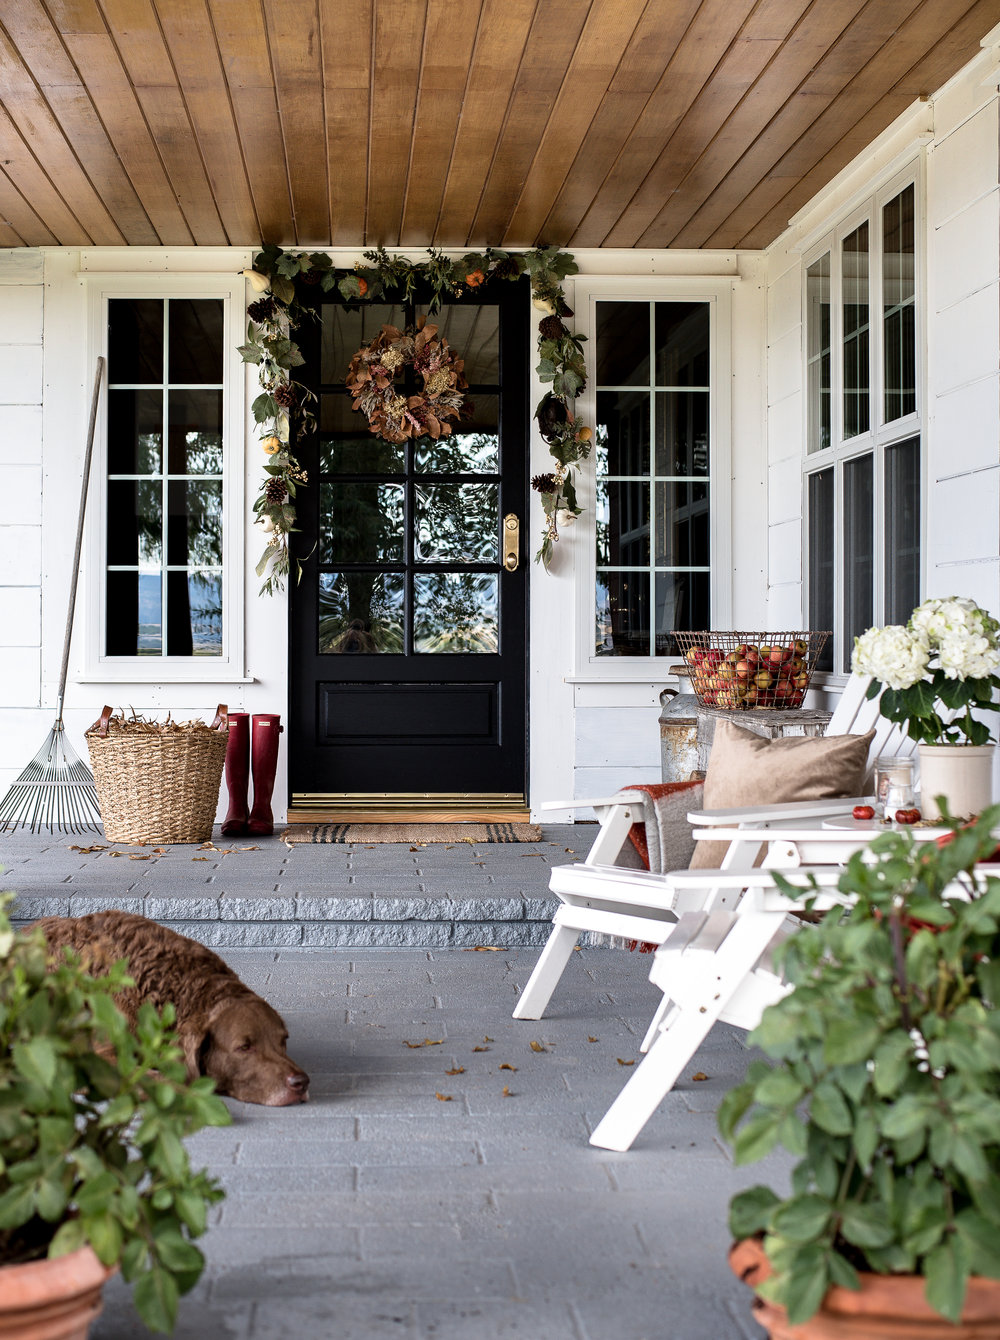 27 Modern Farmhouse Exterior Design Ideas For Stylish But Simple Look: Simple Fall Decorating Ideas For Your Front Porch